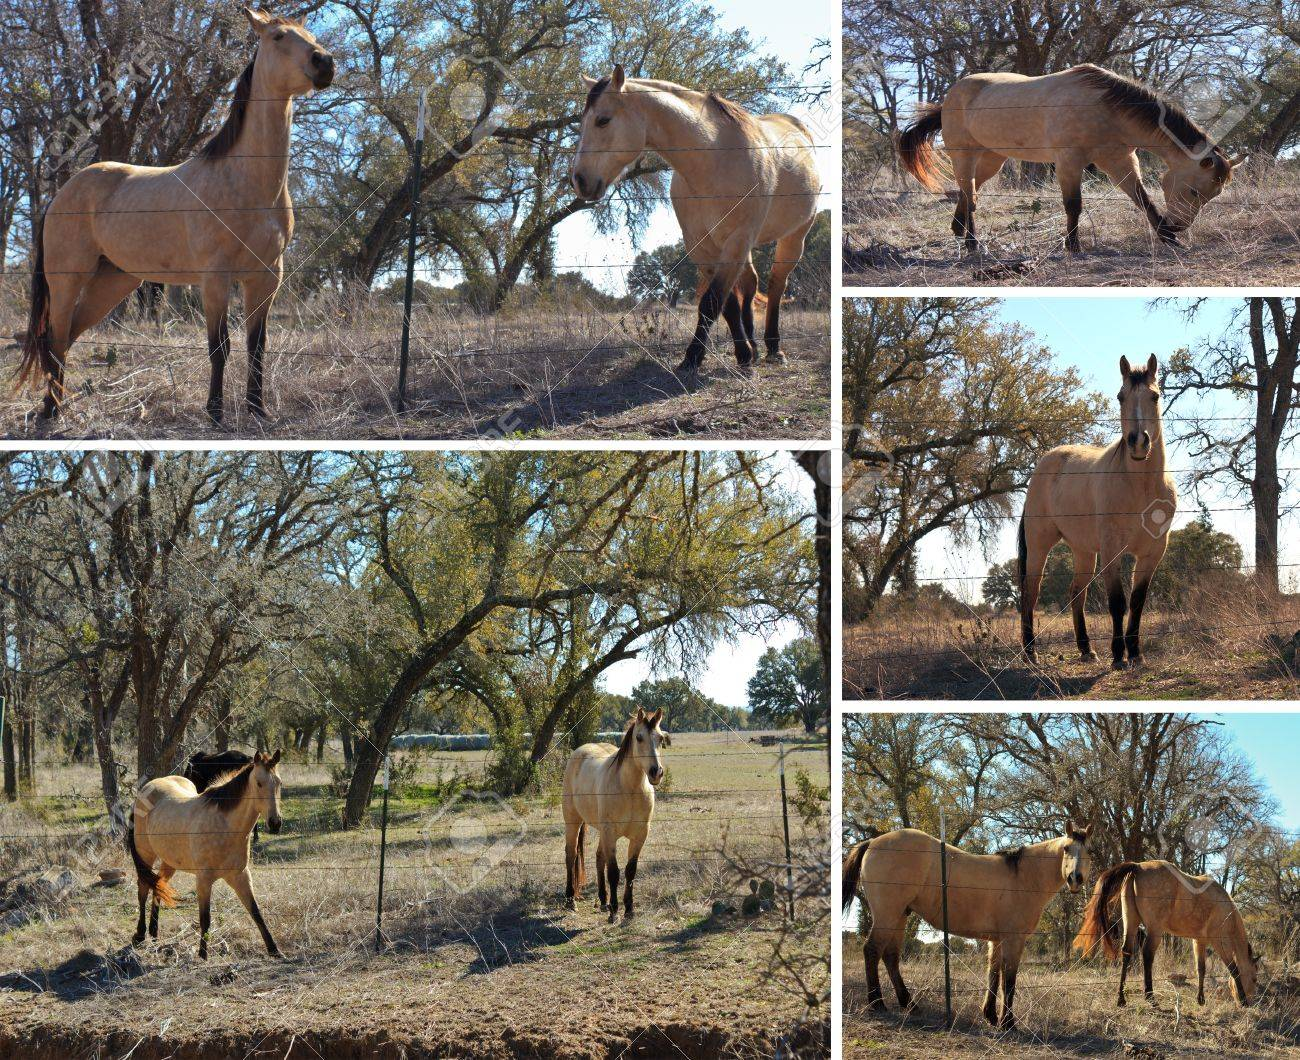 Horse Collage Of Horses In A Field With White Border Stock Photo Picture And Royalty Free Image Image 11980977